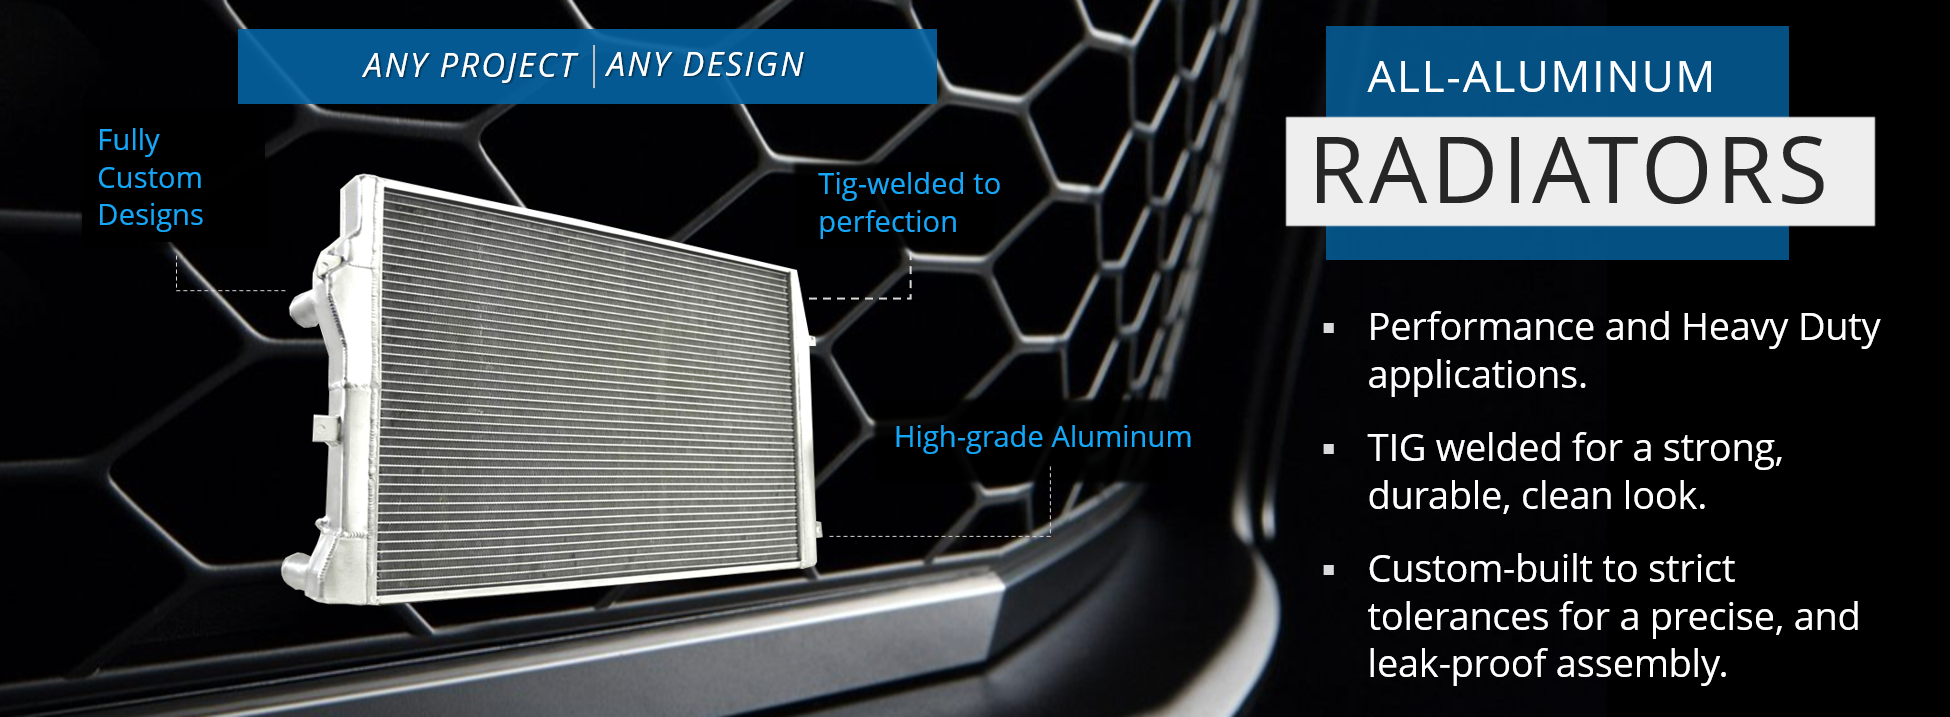 All Aluminum Radiators